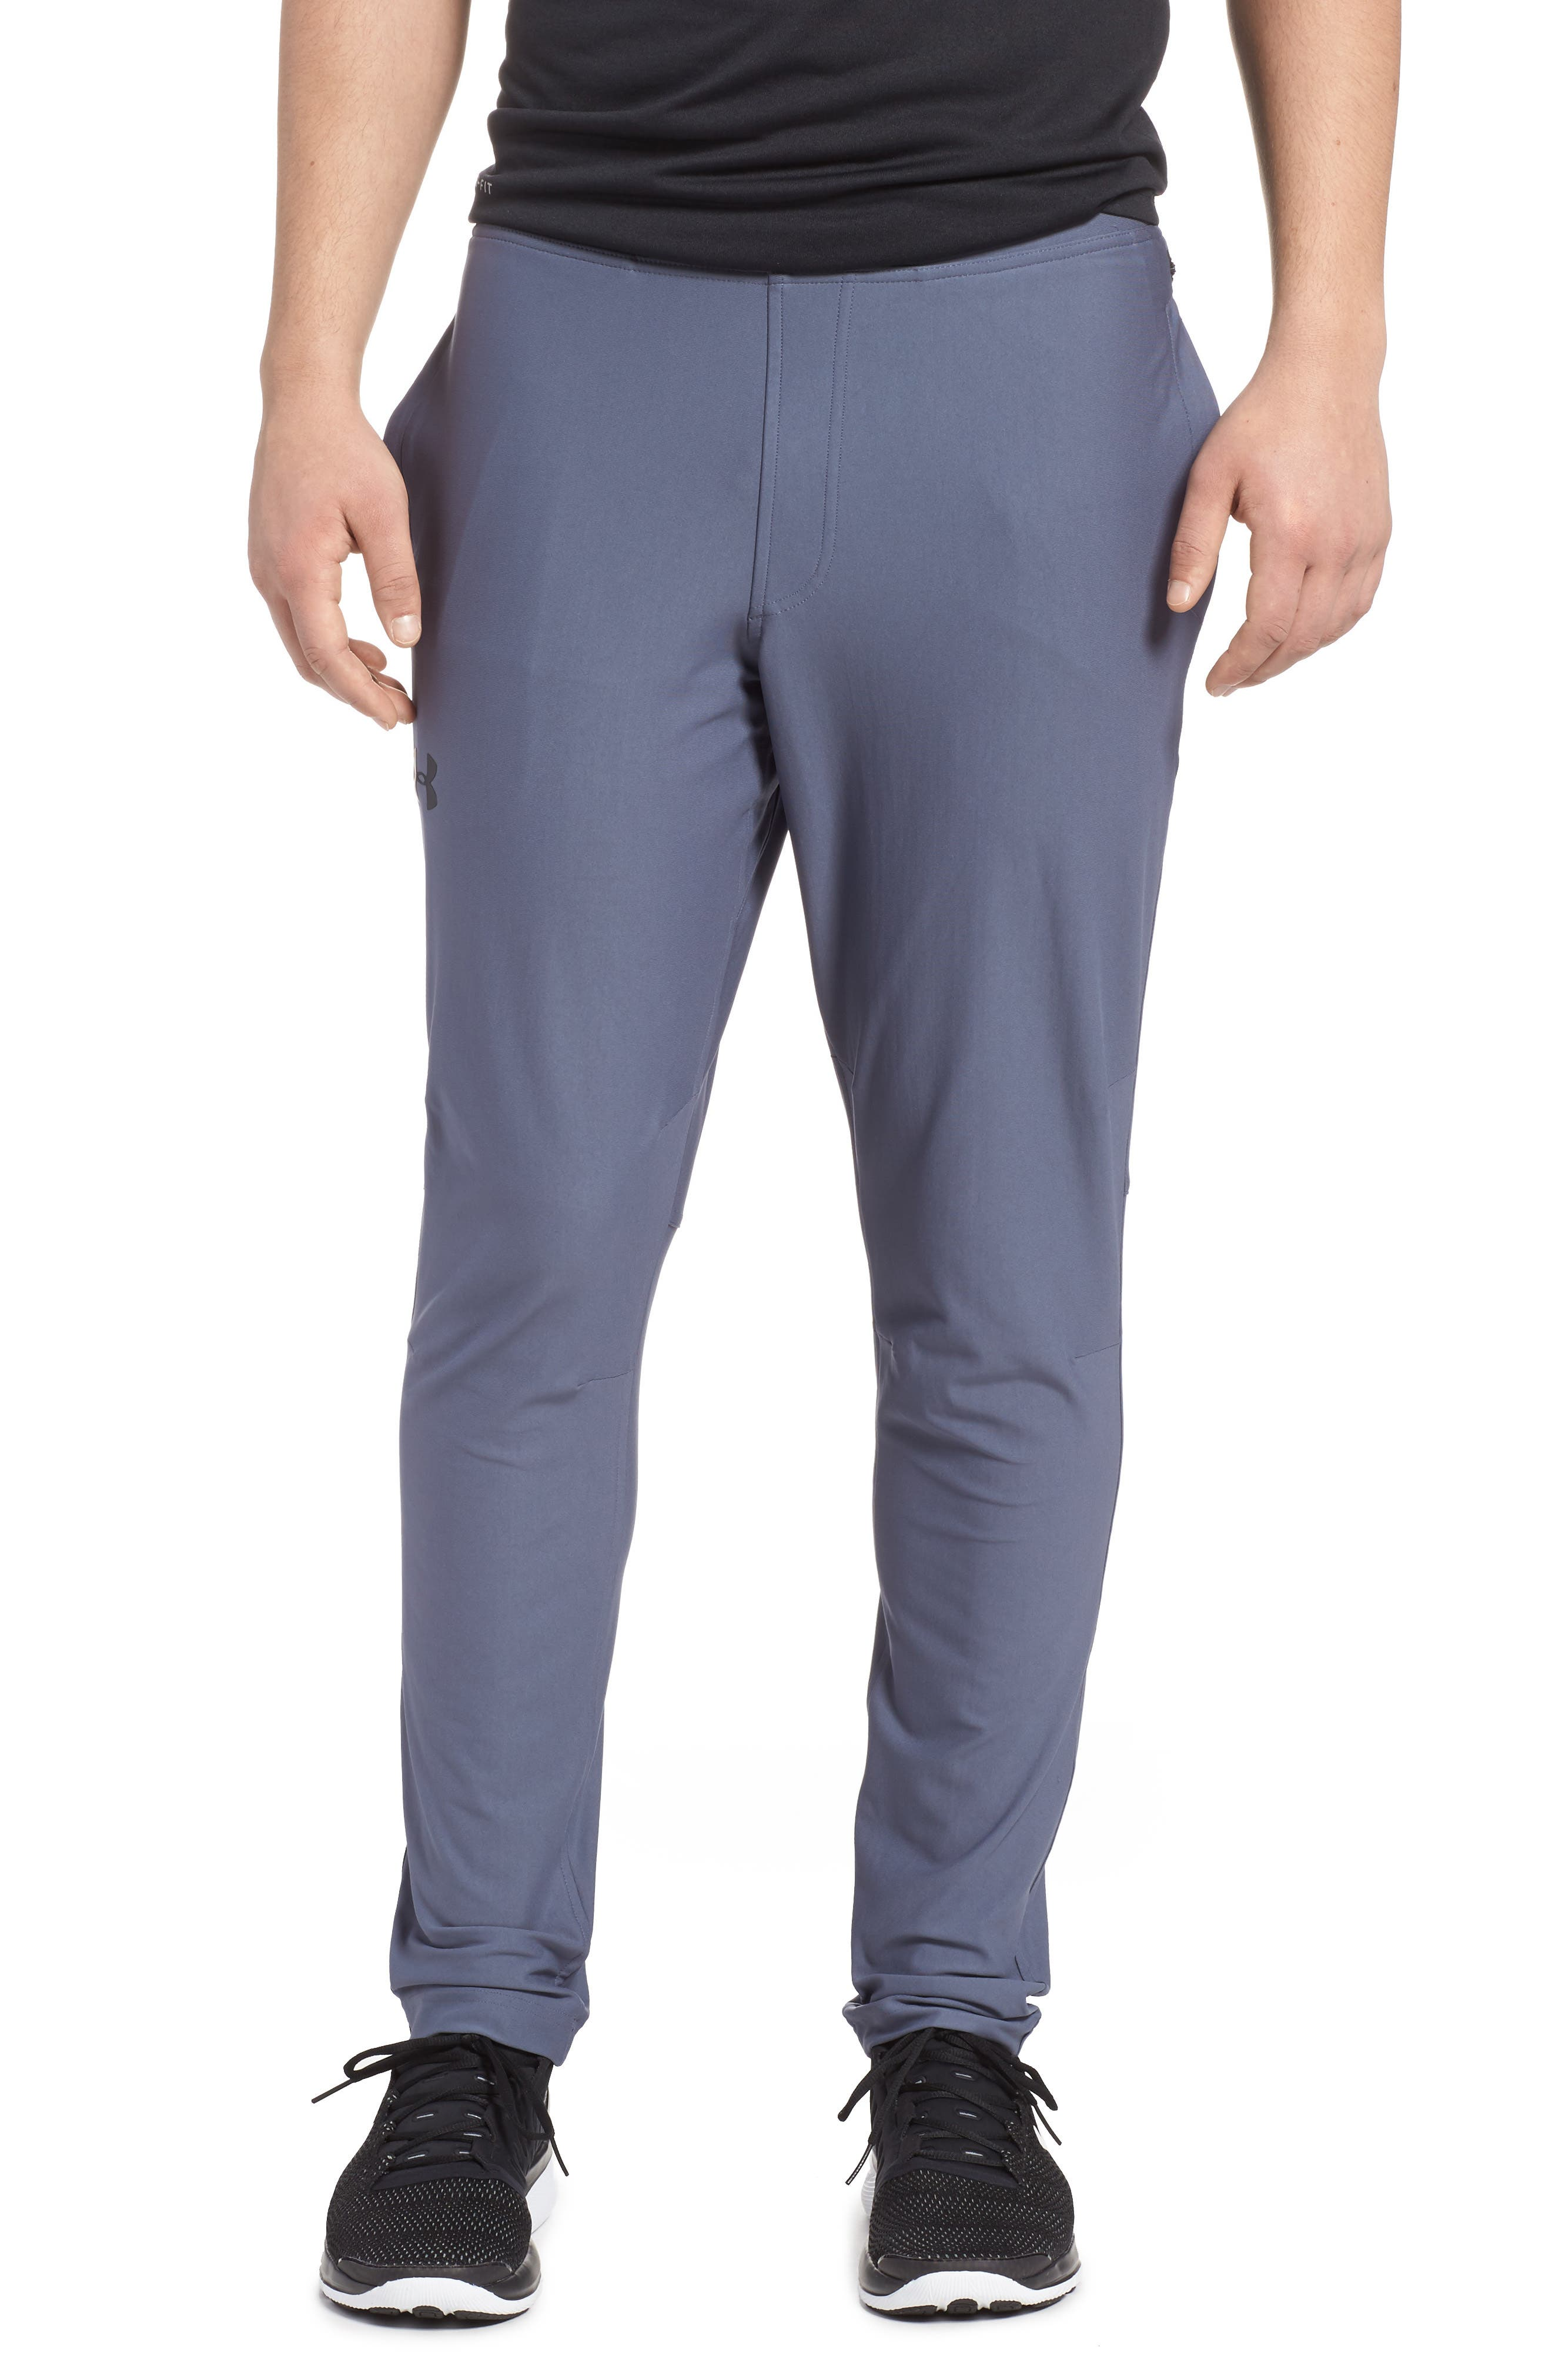 Alternate Image 1 Selected - Under Armour Elevated Pants